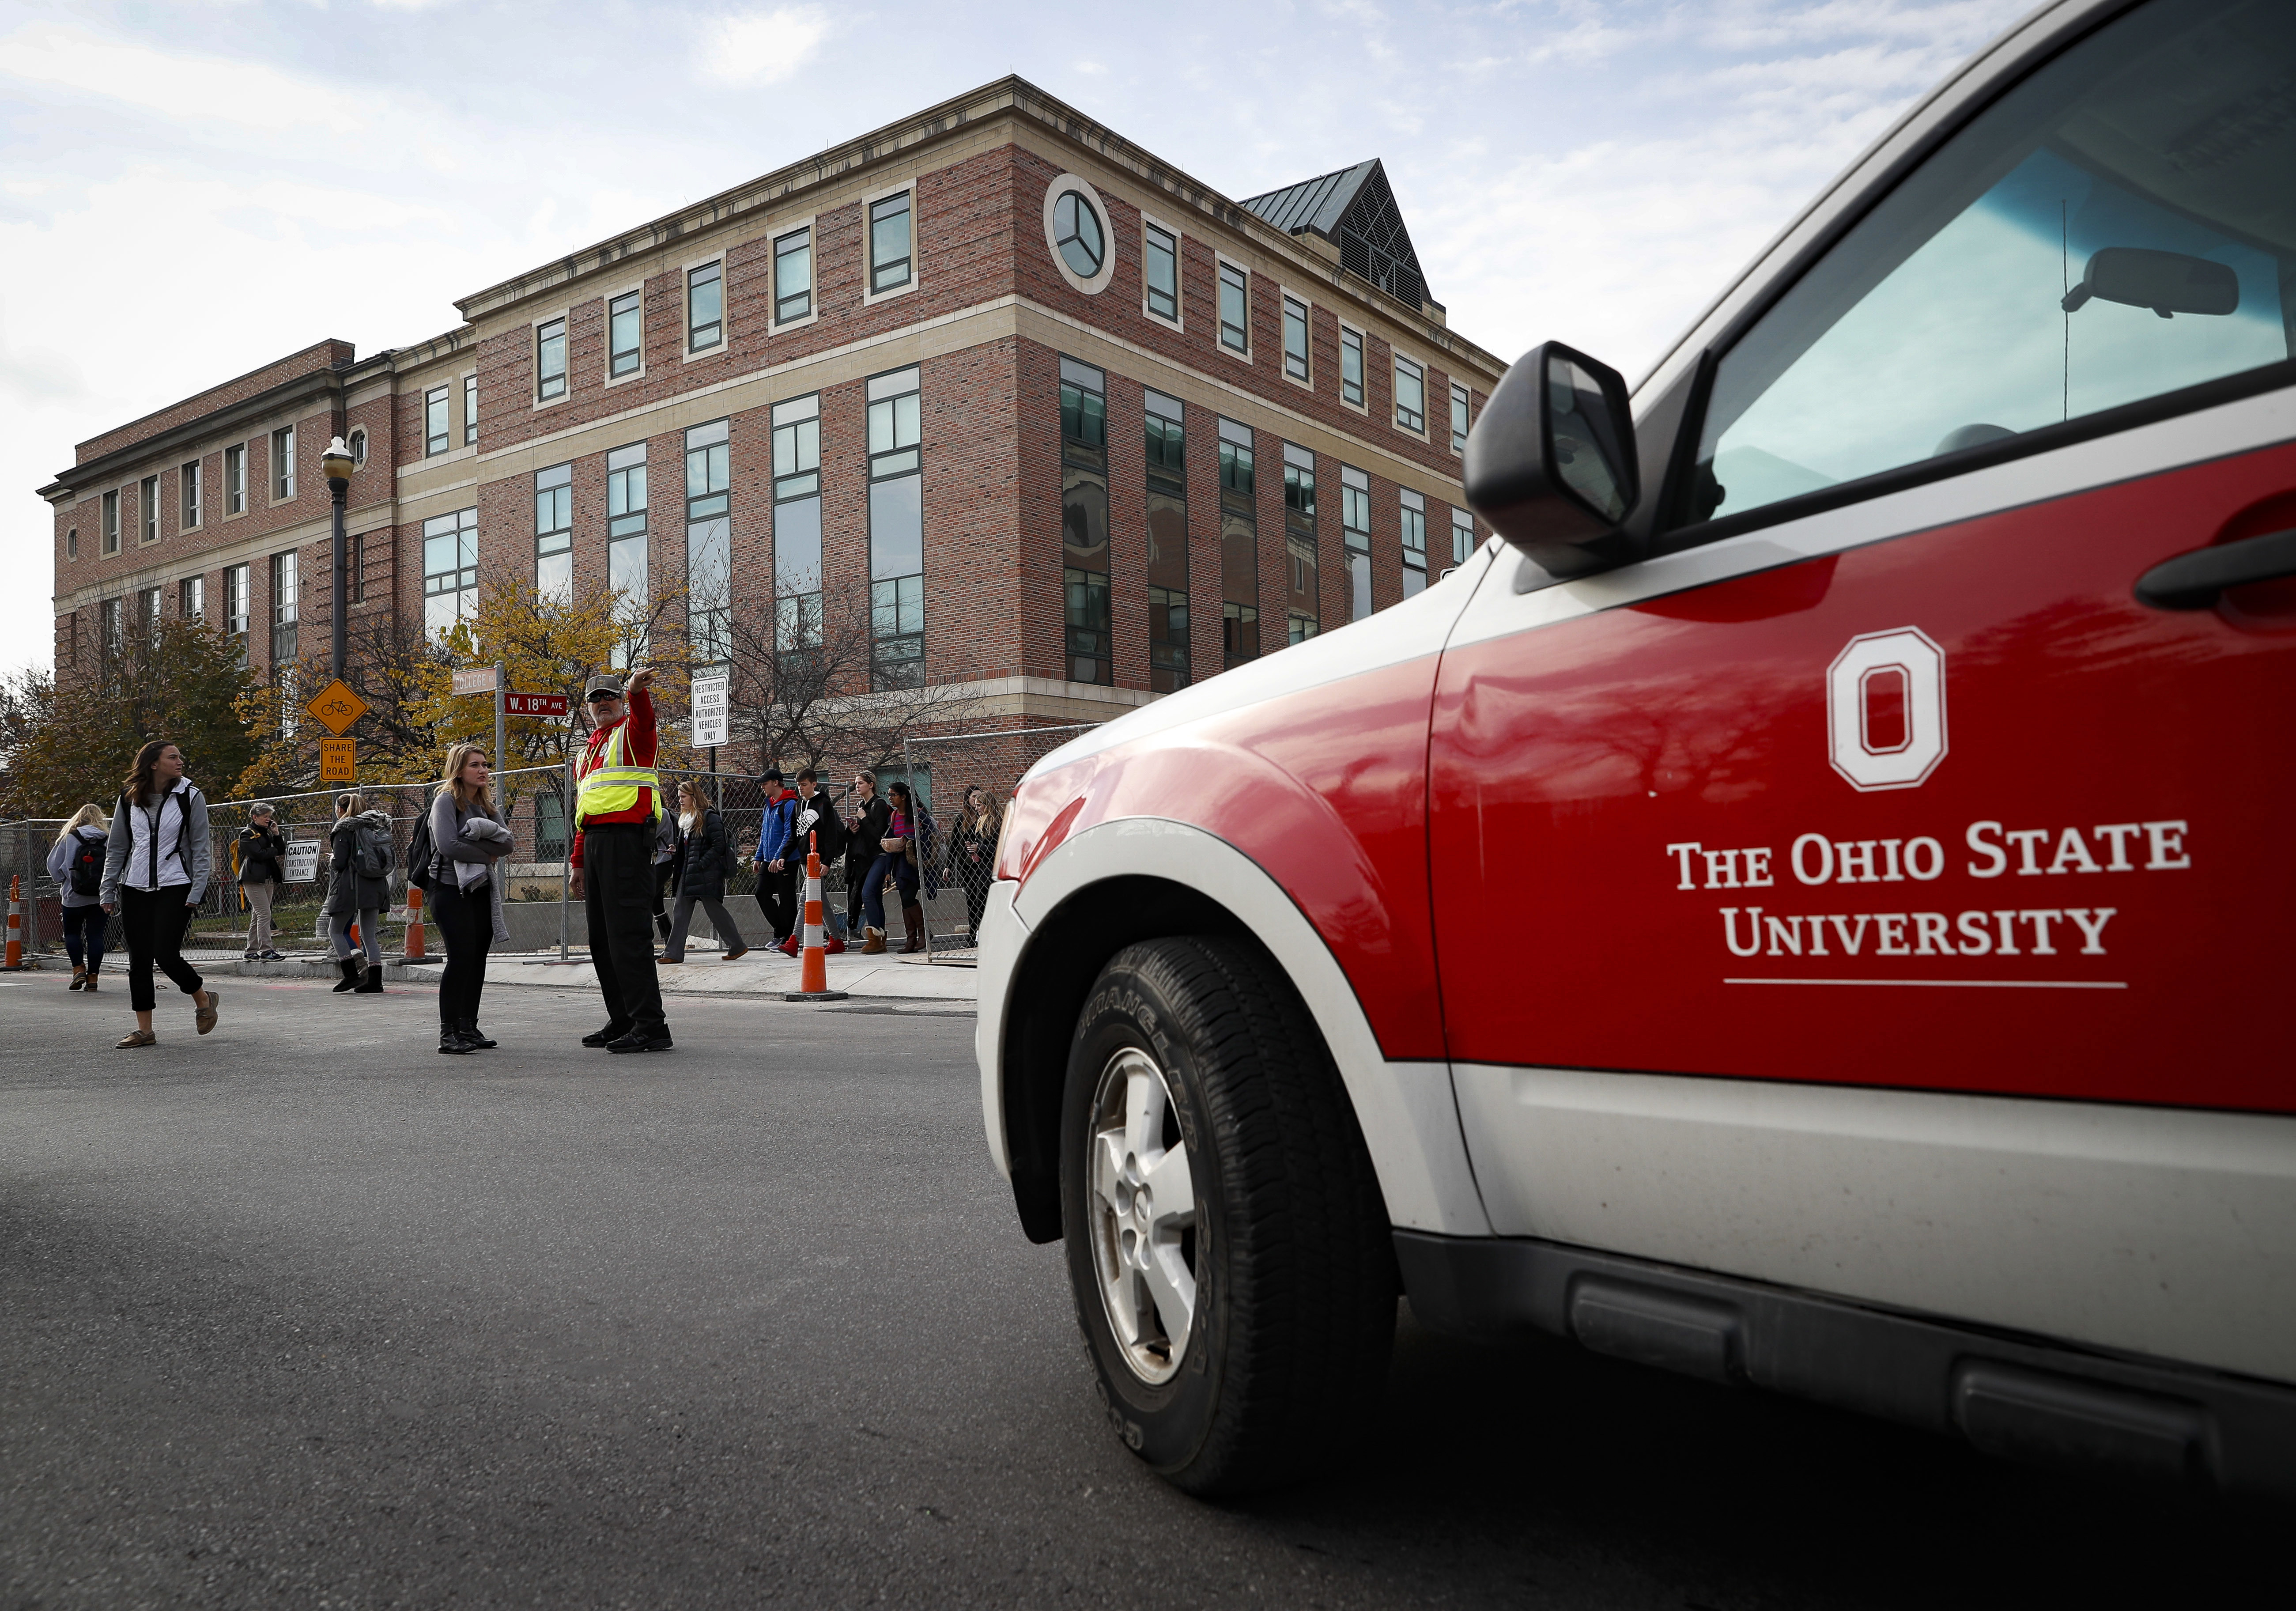 Students leave buildings as police respond to an attack on campus at Ohio State University, in Columbus, OH., on Nov. 28, 2016. (AP Photo/John Minchillo)